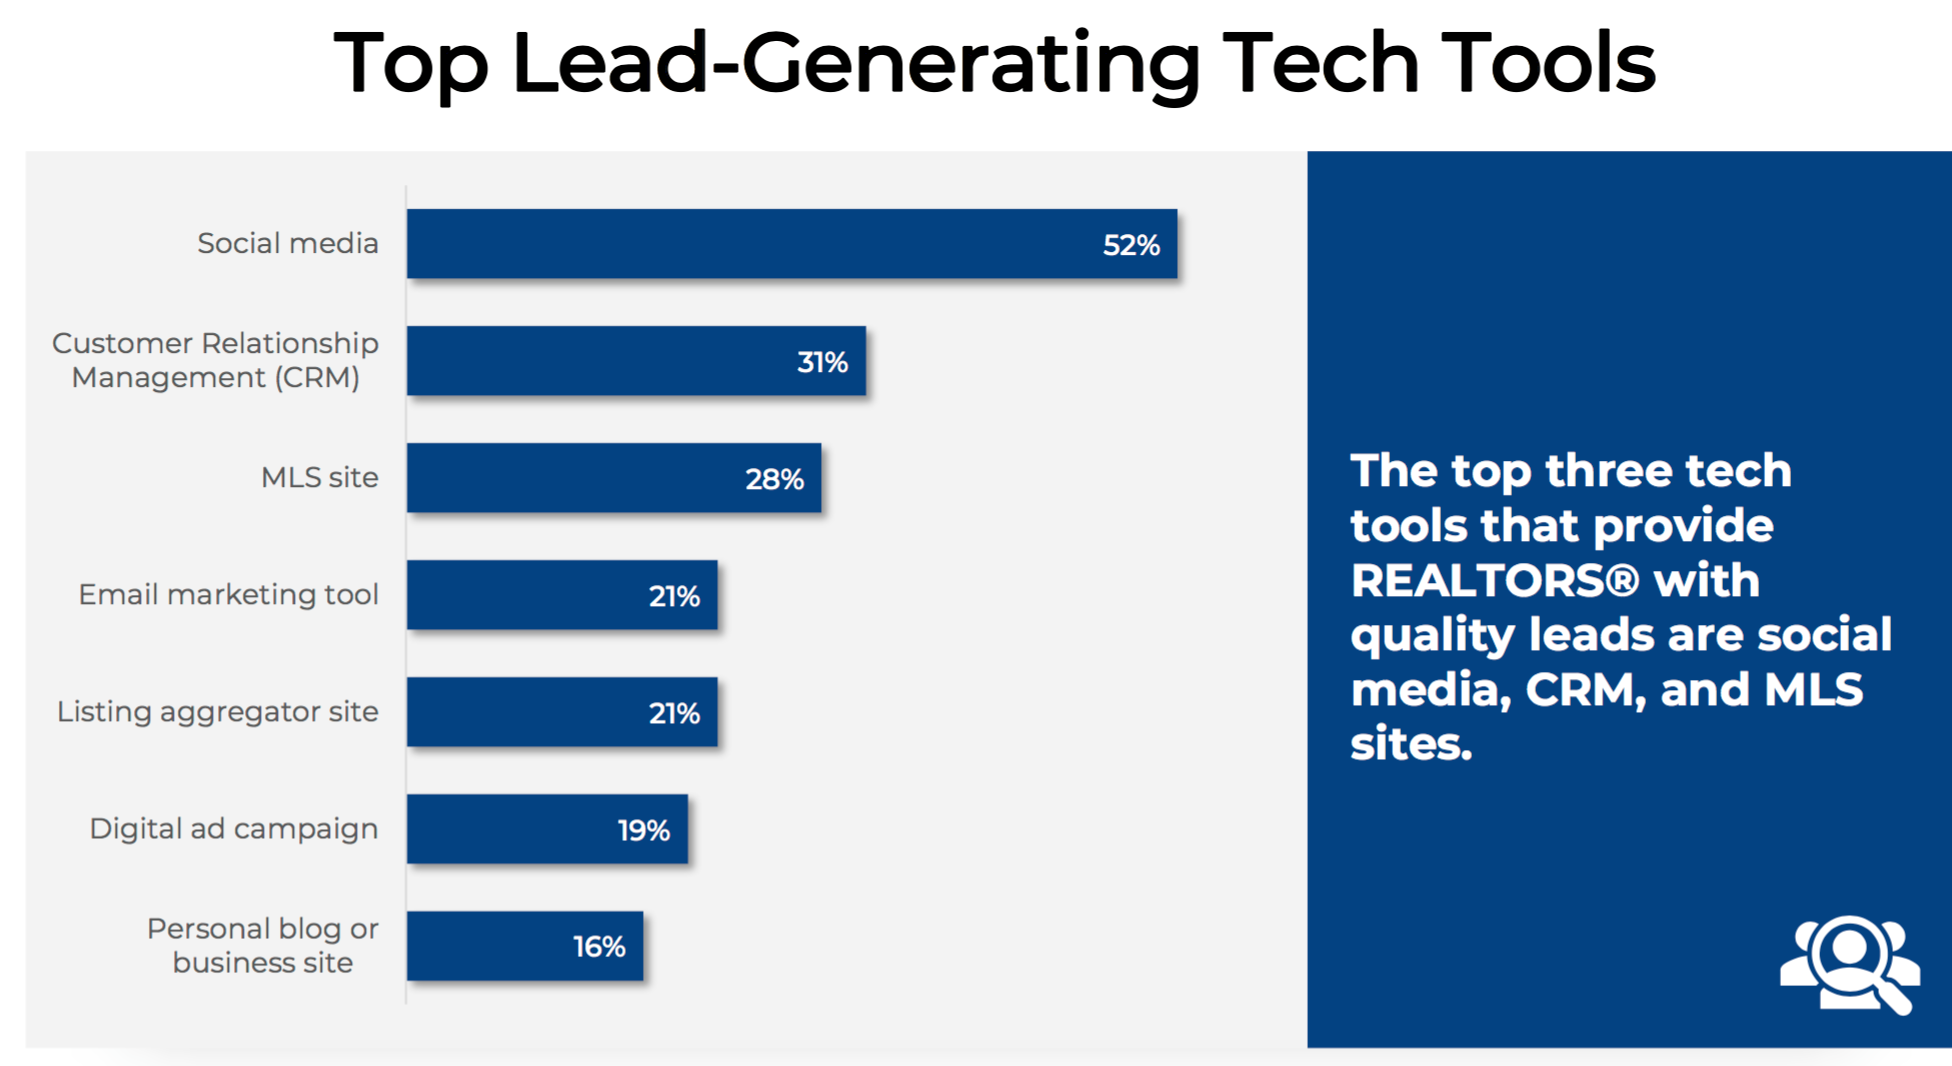 A bar chart showing the top lead-generating tech tools used by REALTORS®